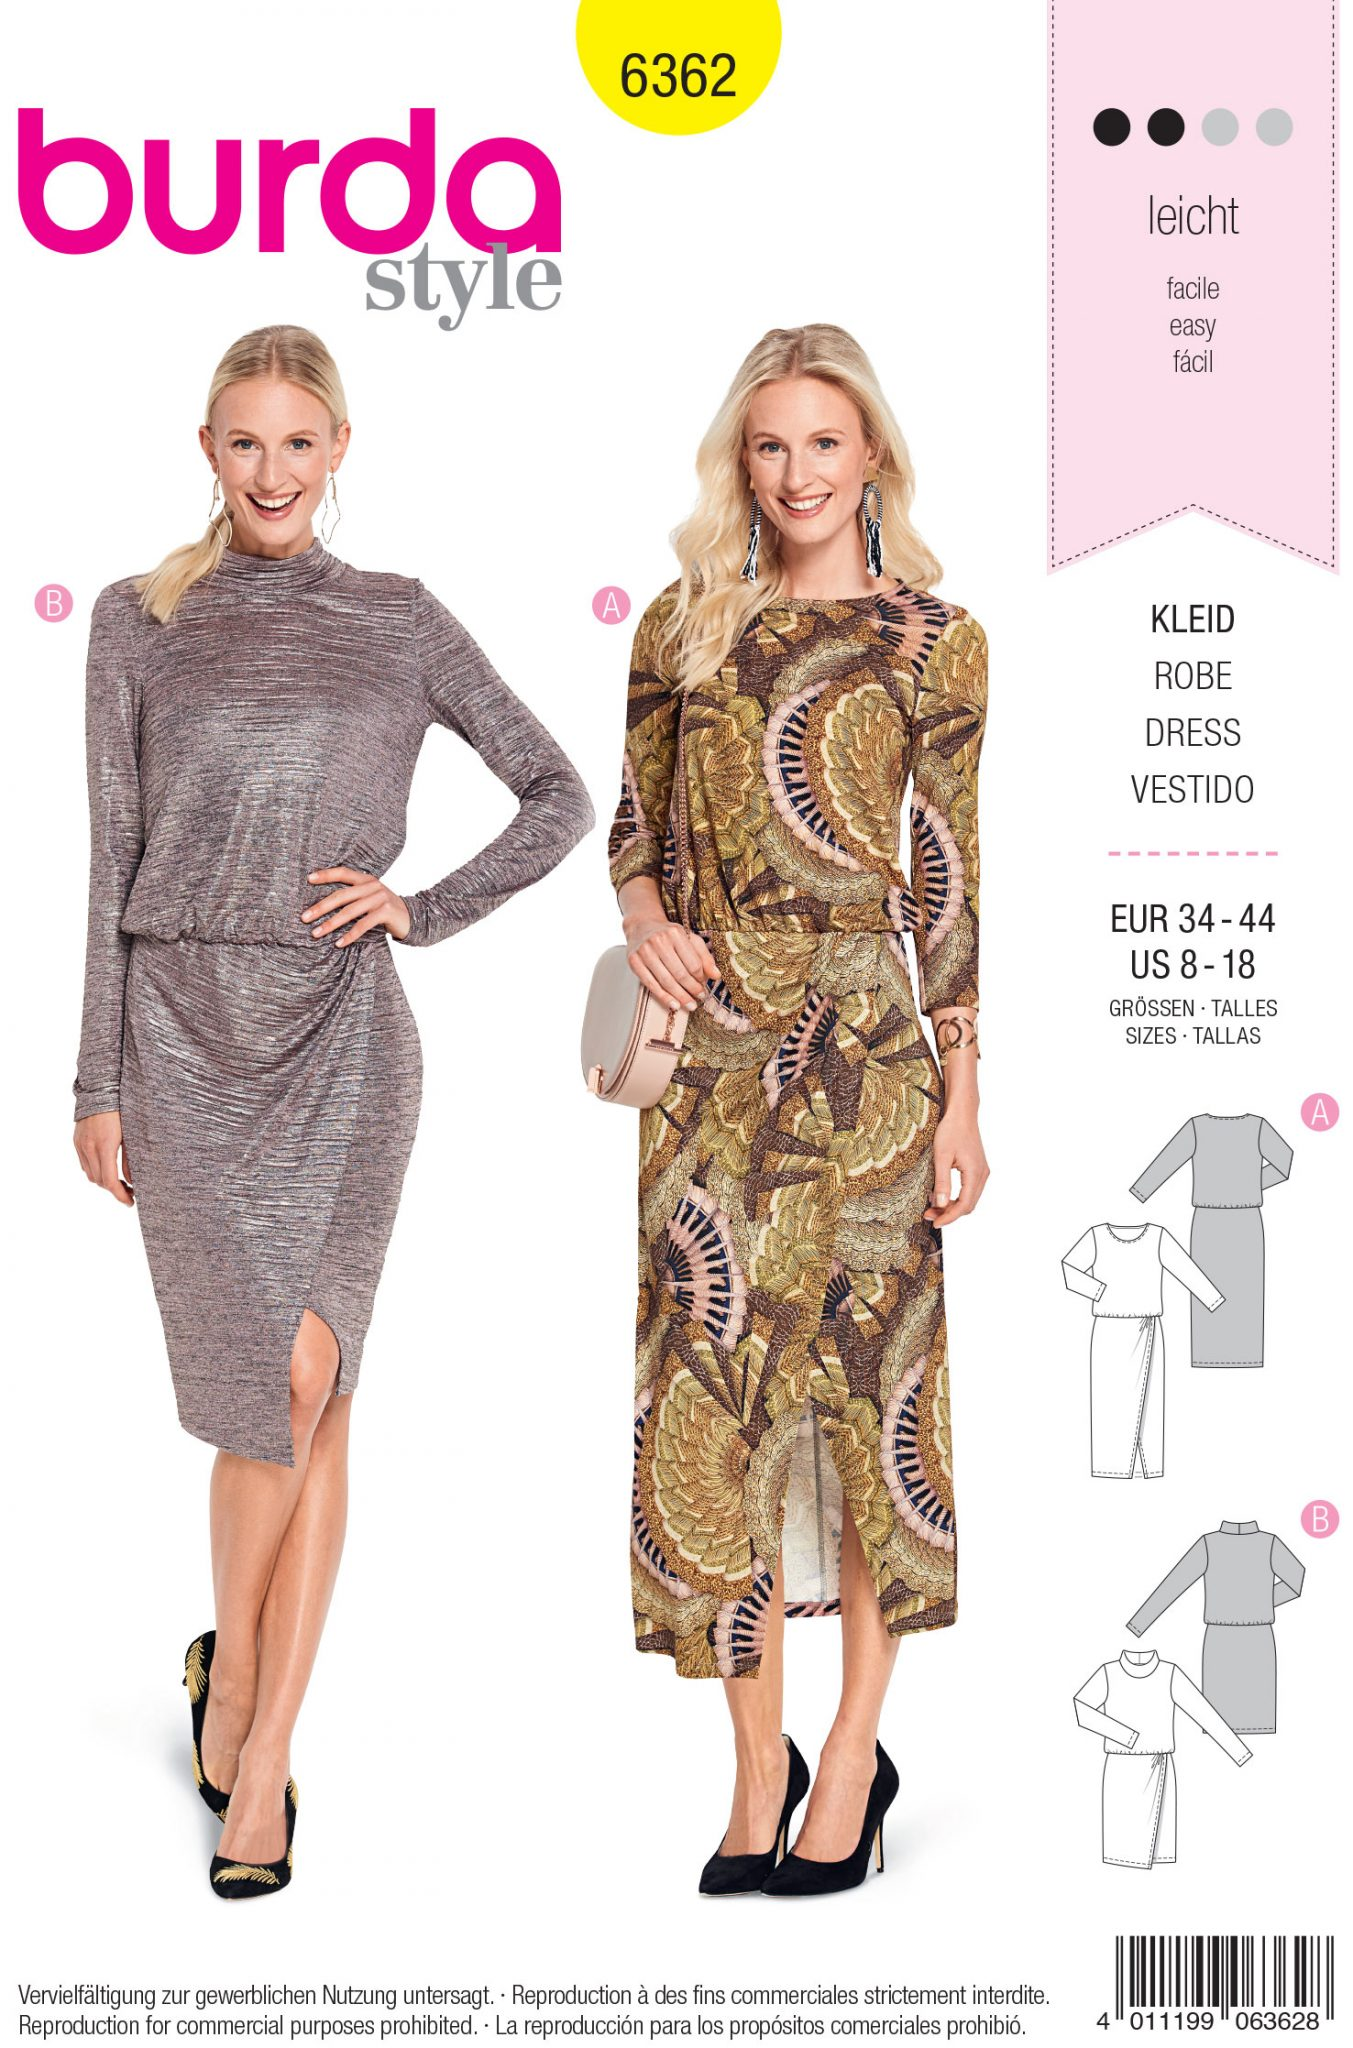 b4f00087c124 Burda Style Sewing Pattern - 6362 - Misses' Jersey Dress - Size 8-18 ...